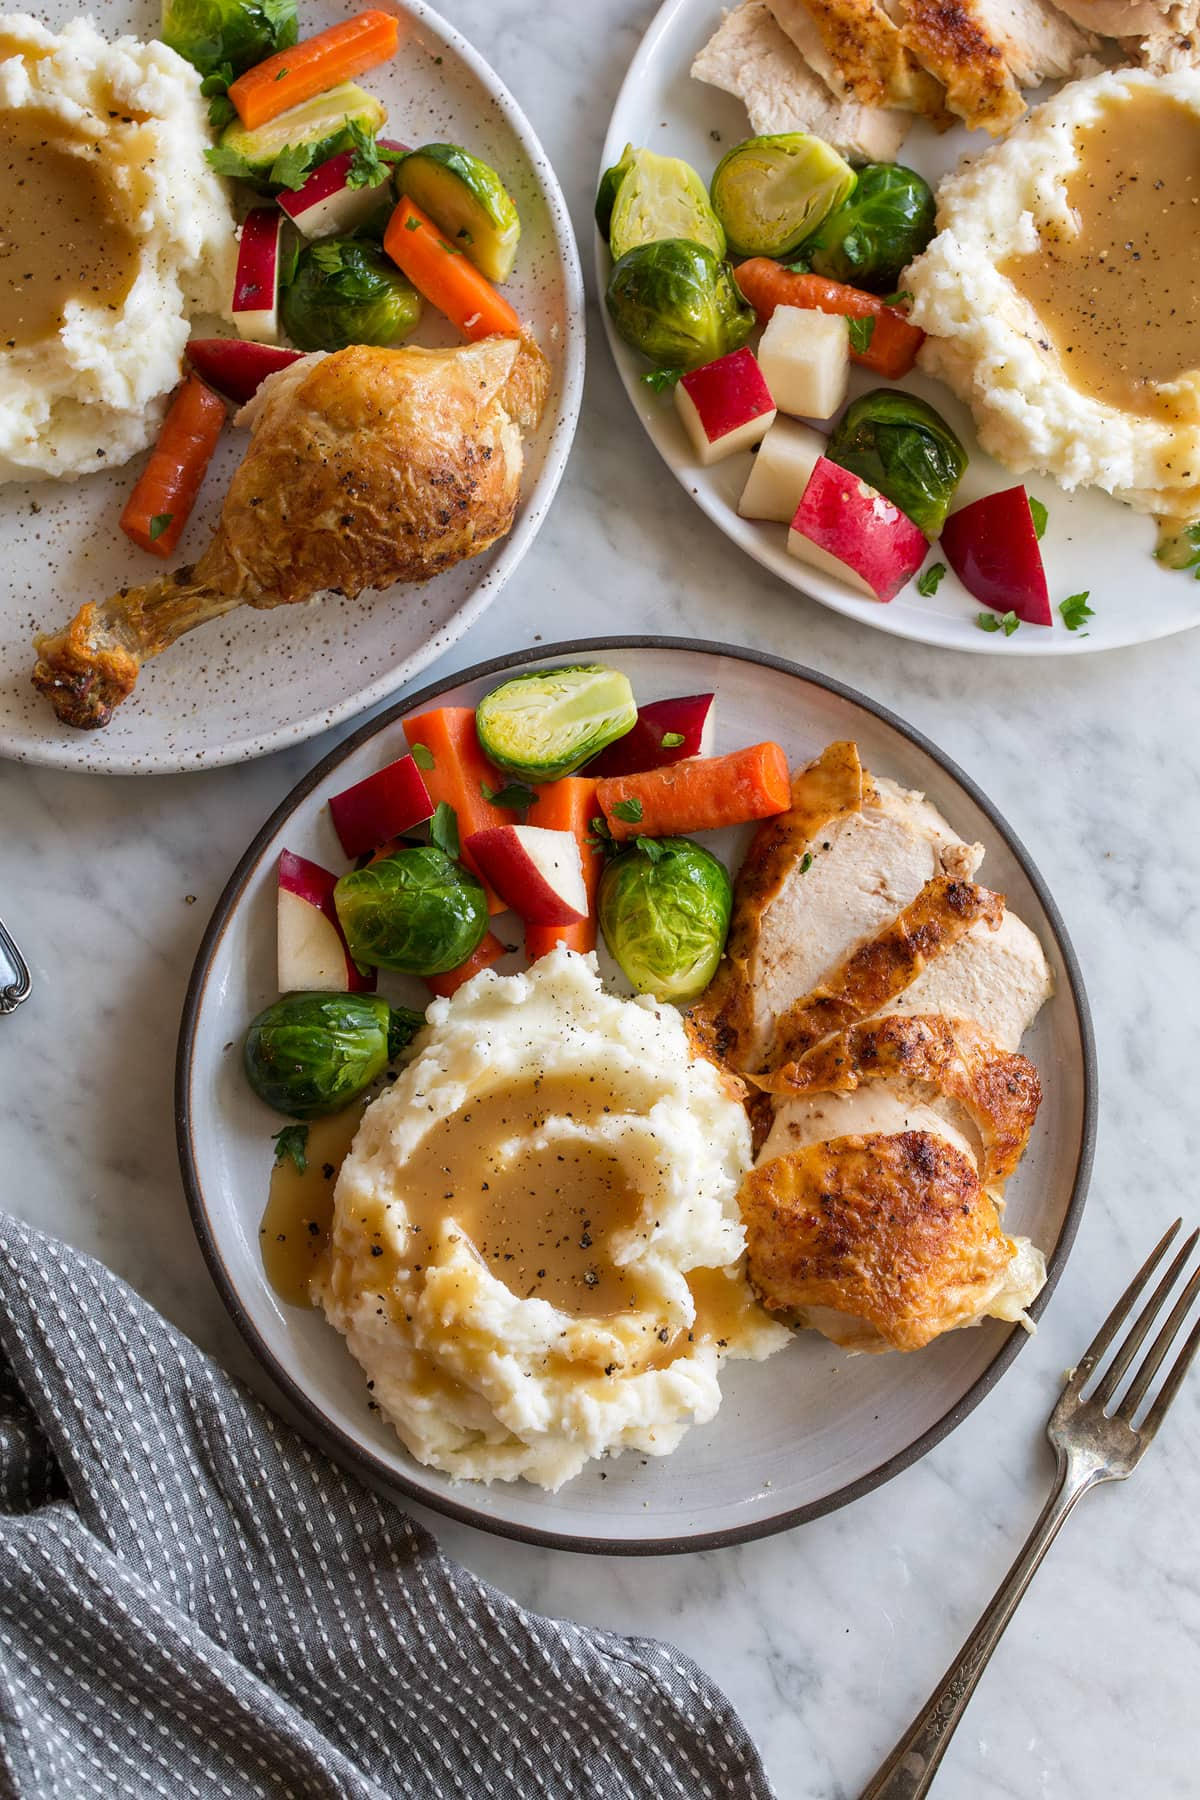 Roast chicken with mashed potatoes, gravy, and steamed veggies.